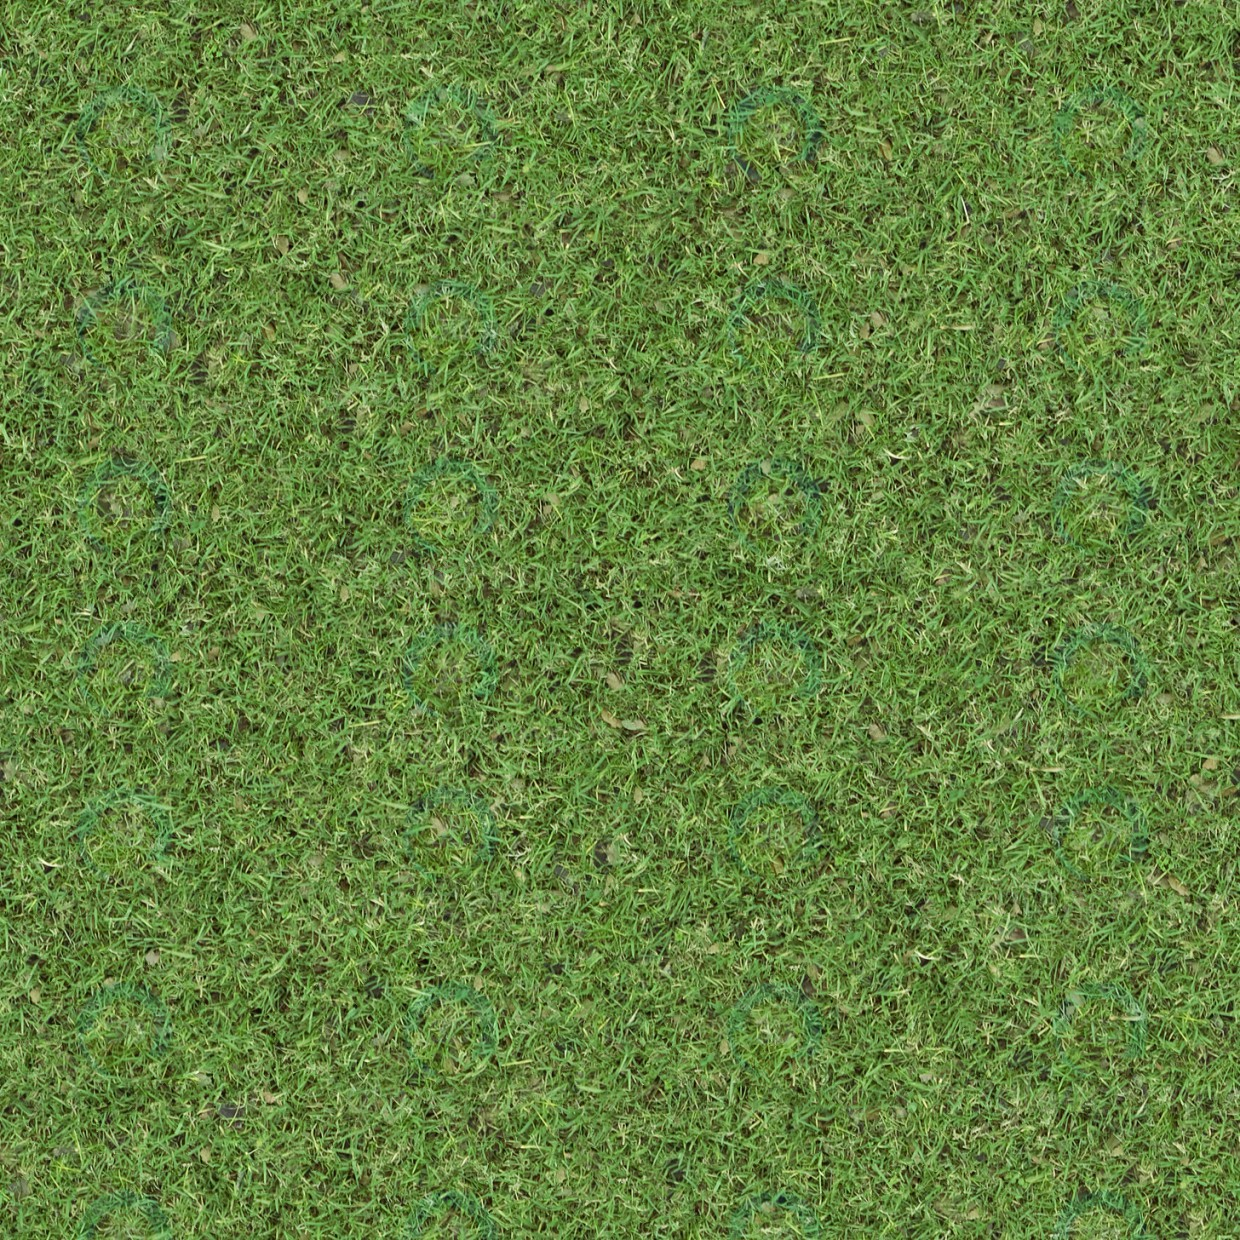 Texture Grass free download - image